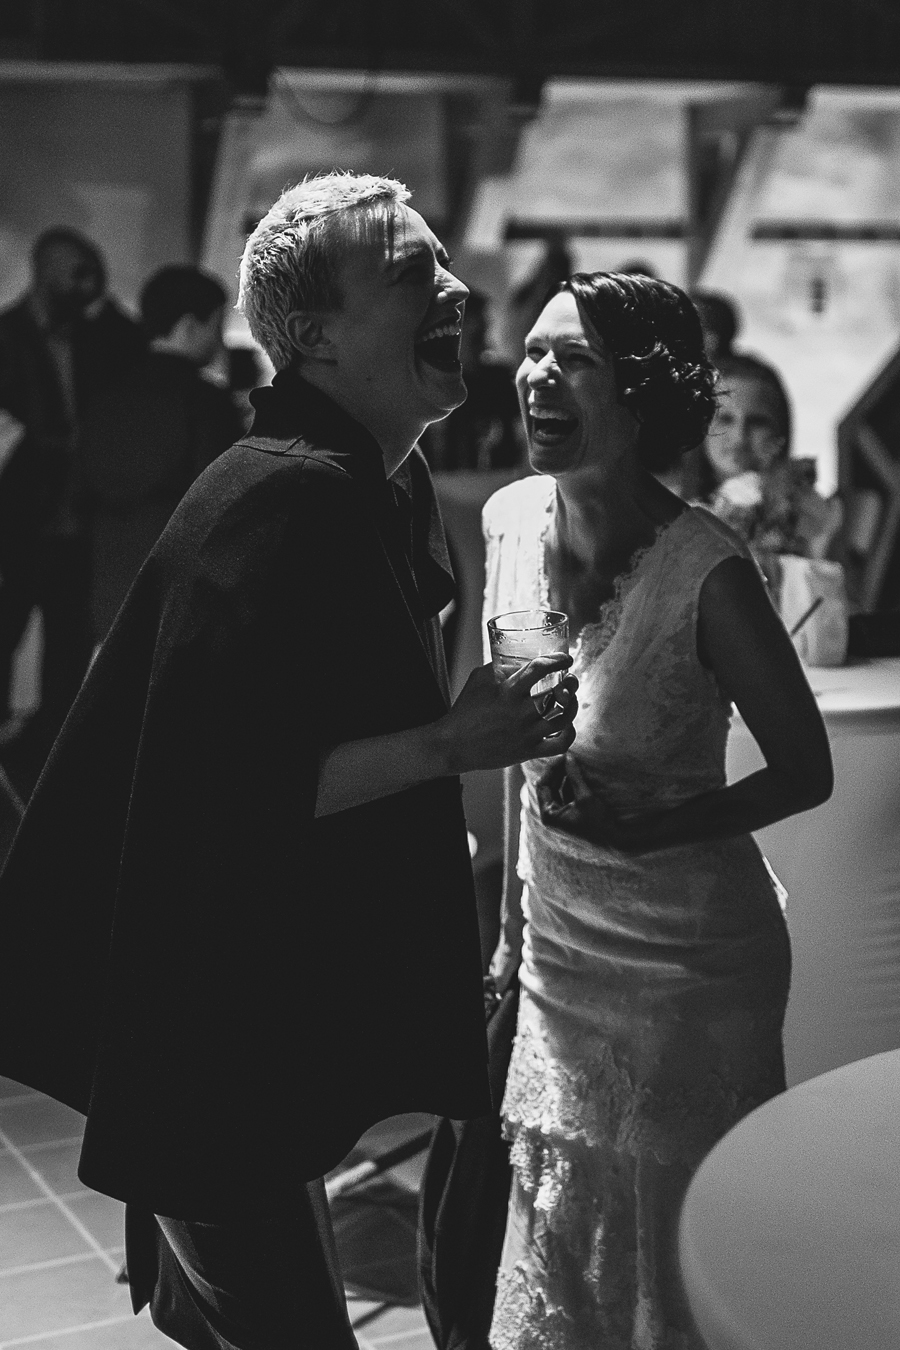 kranj_layer_poroka_wedding_photography_hochzeit01651.jpg